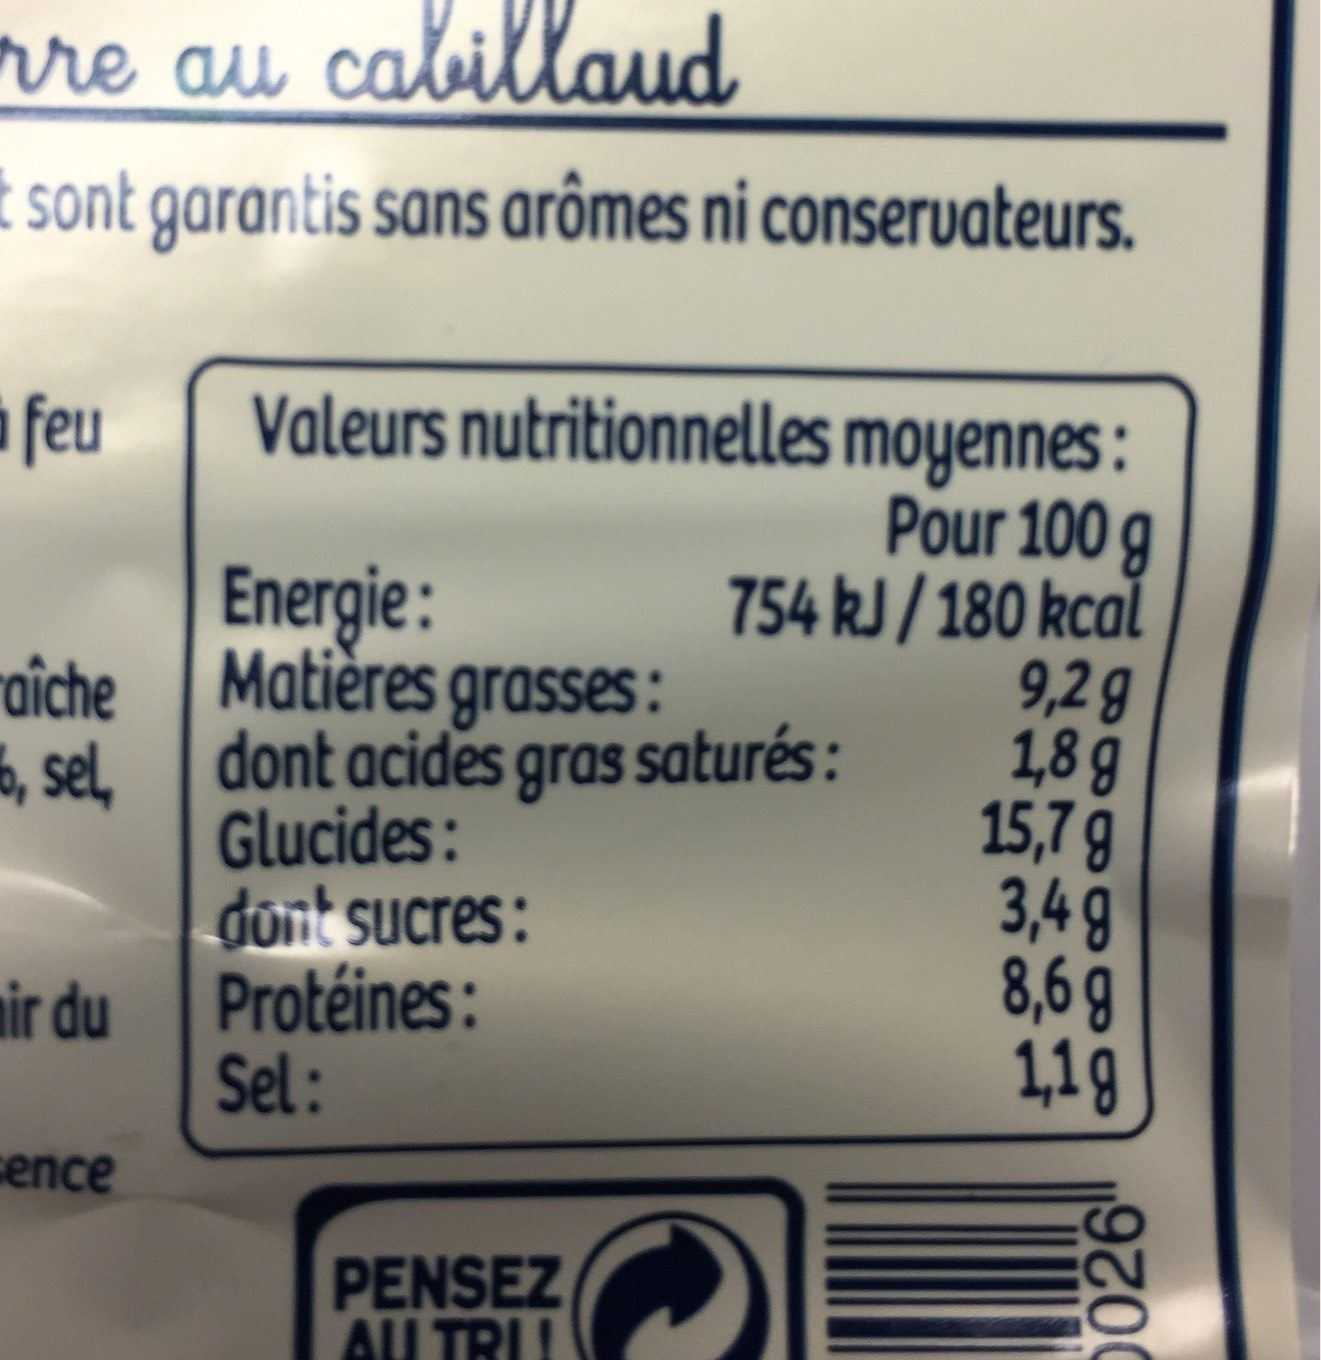 4 Croques Cabillaud - Informations nutritionnelles